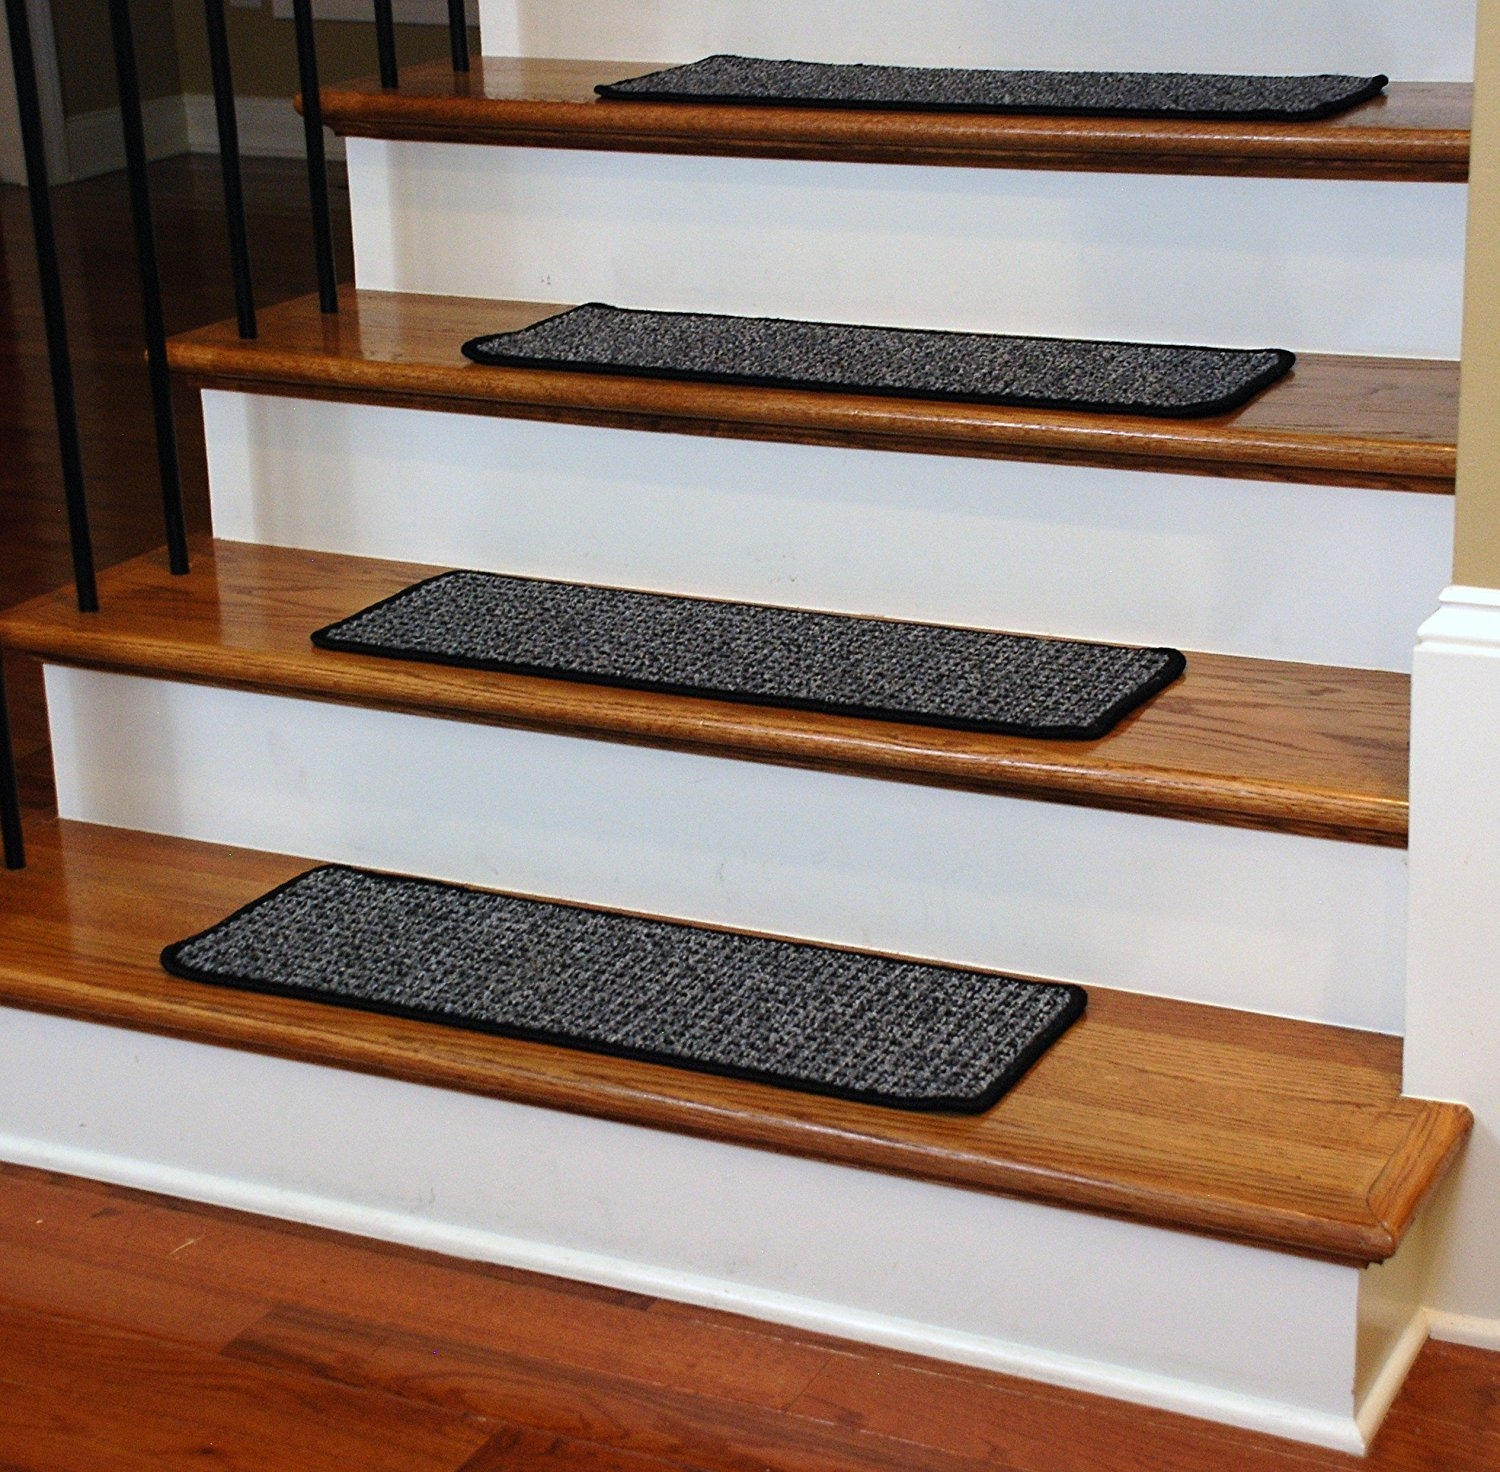 Washable Non Skid Carpet Stair Treads Silvered Sky 13 Within Carpet Stair Treads Non Slip (Image 15 of 15)